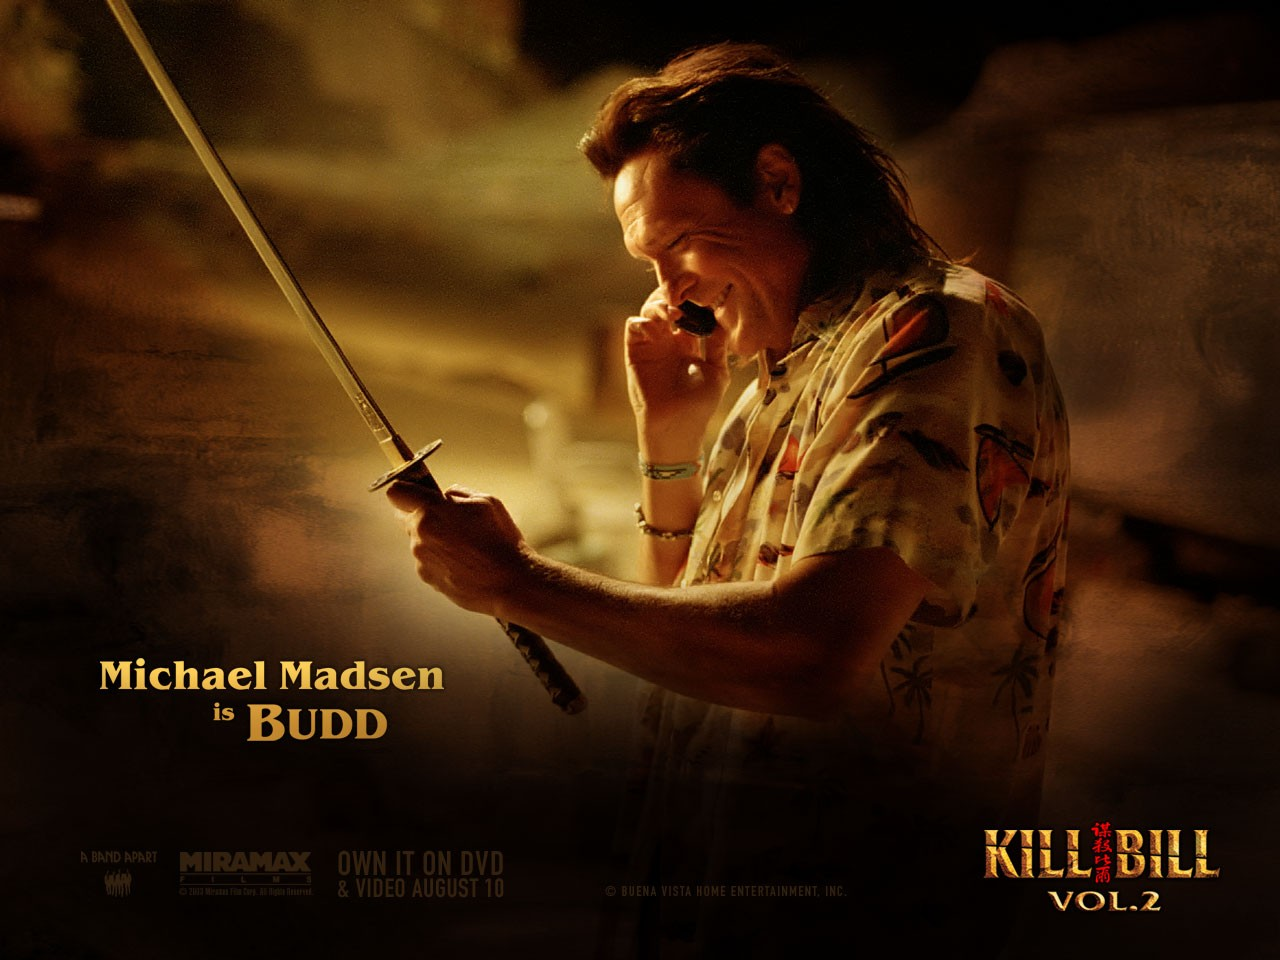 Un wallpaper di Michael Madsen che interpreta Budd nel film 'Kill Bill: Volume 2'